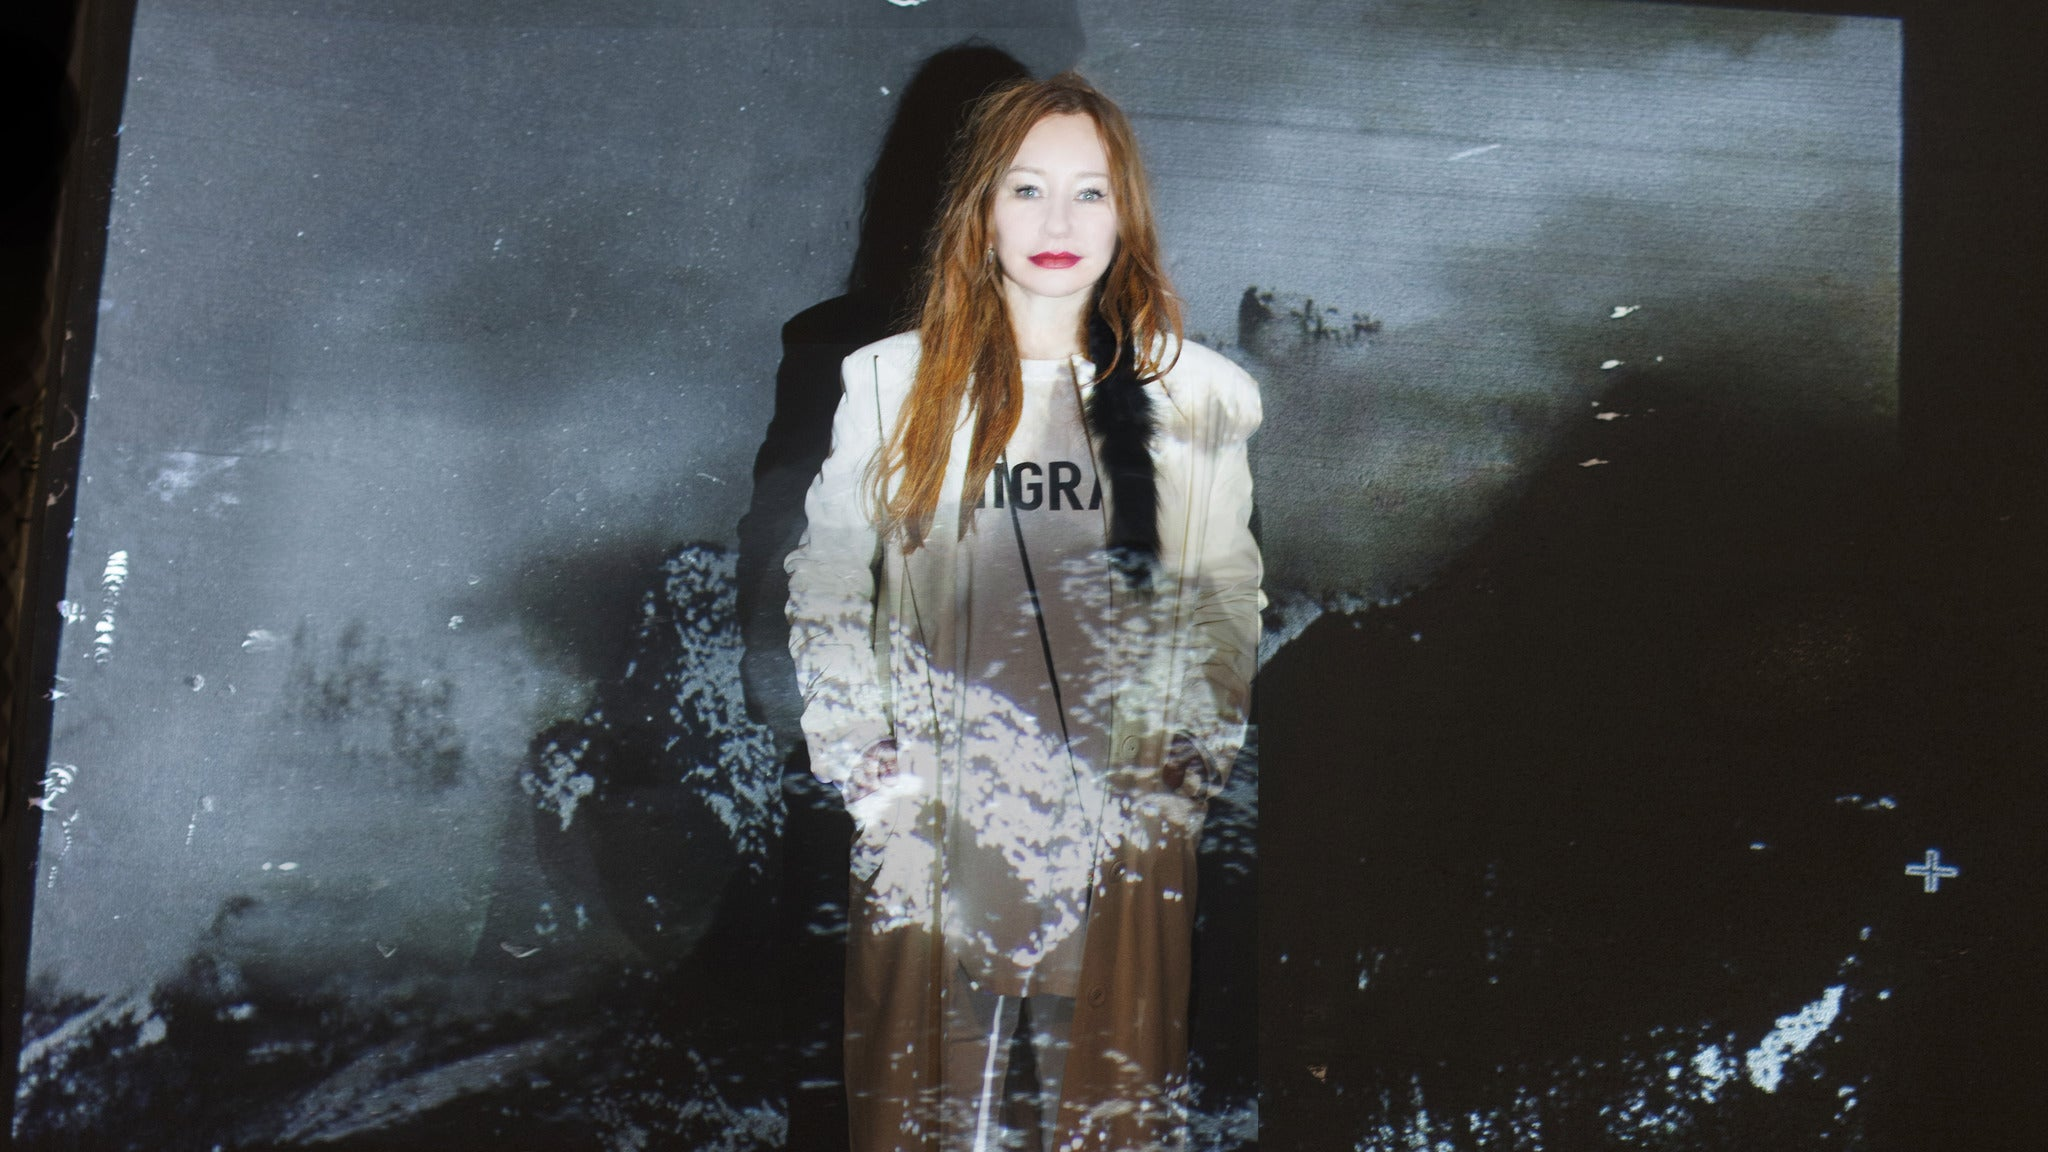 Tori Amos: Native Invader Tour at Balboa Theatre